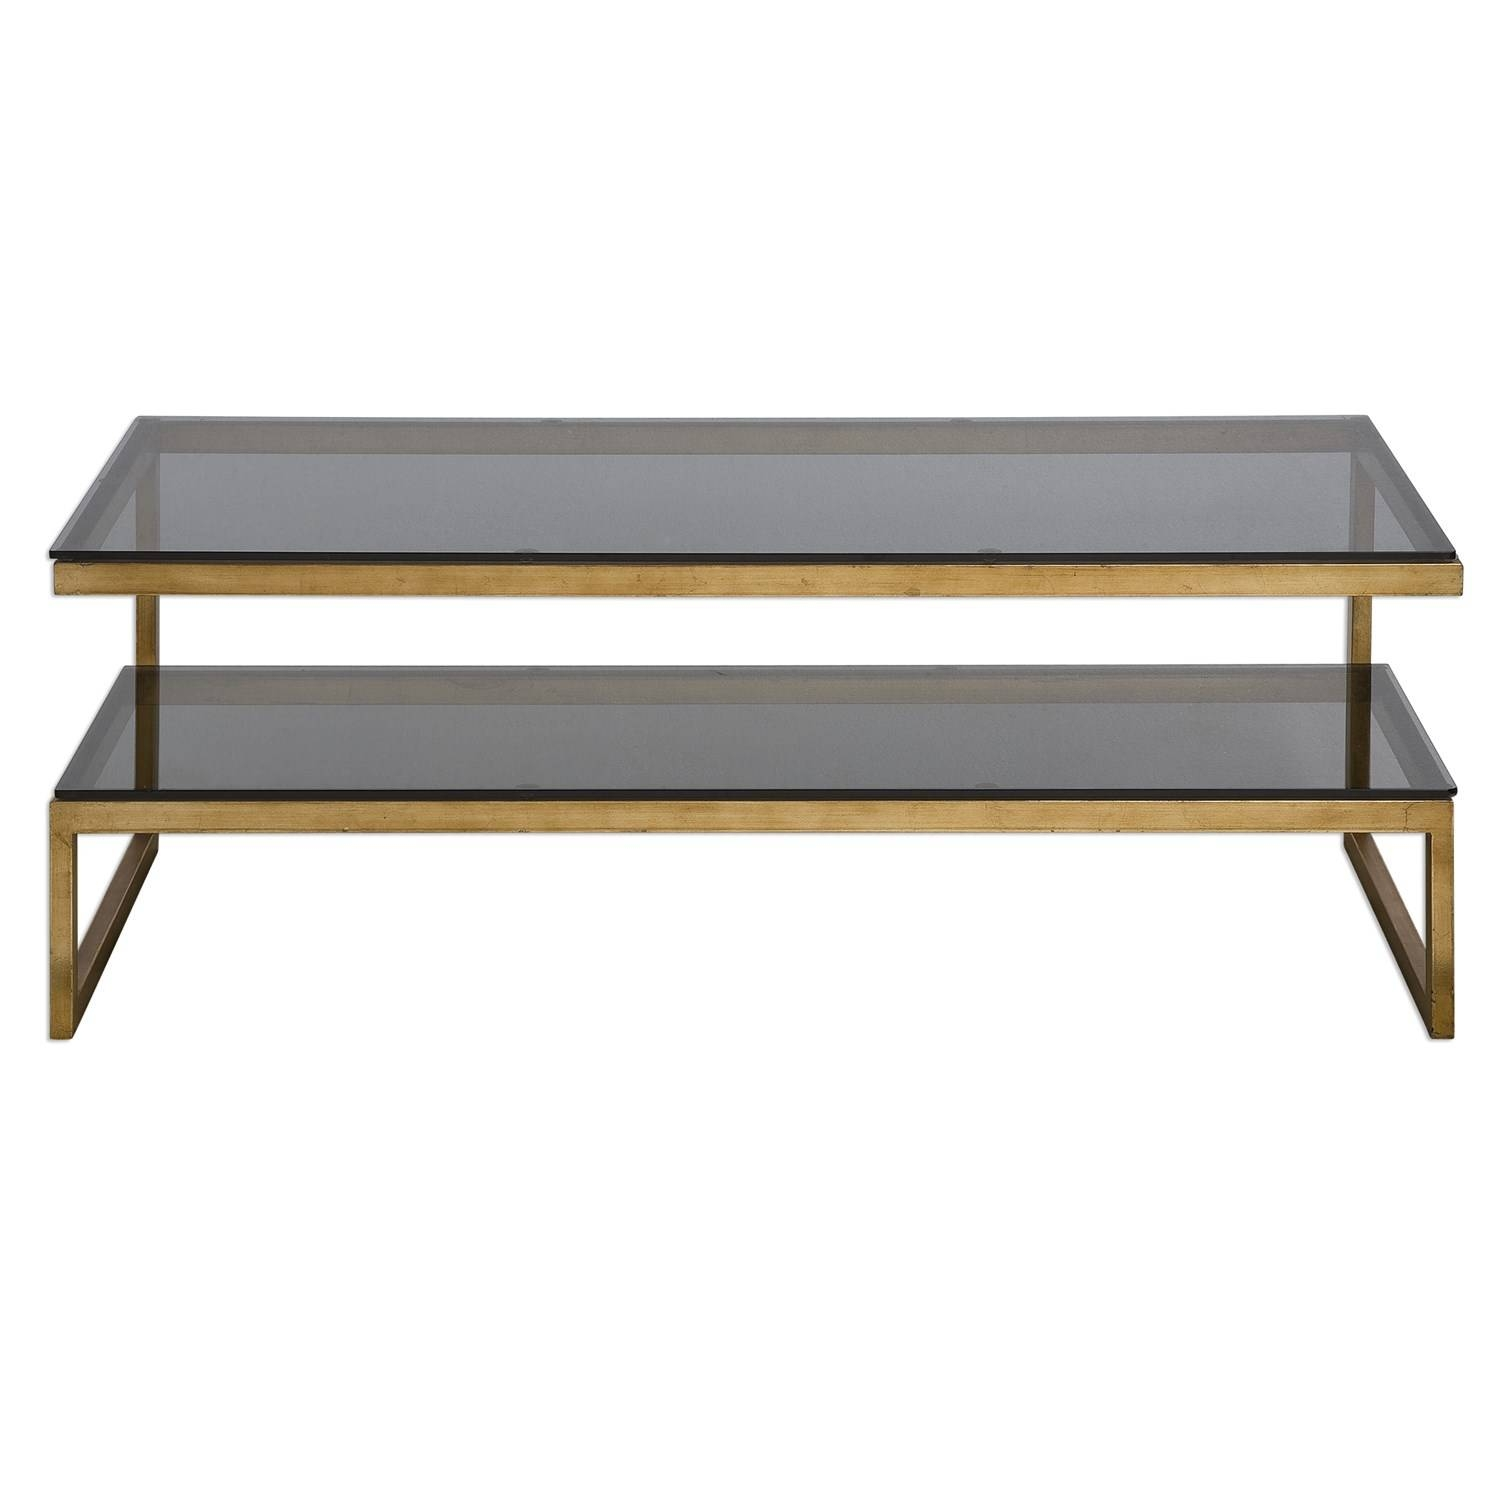 Uttermost 24619 Adeen Glass Coffee Table - Homeclick in Glass Coffee Tables With Shelf (Image 27 of 30)